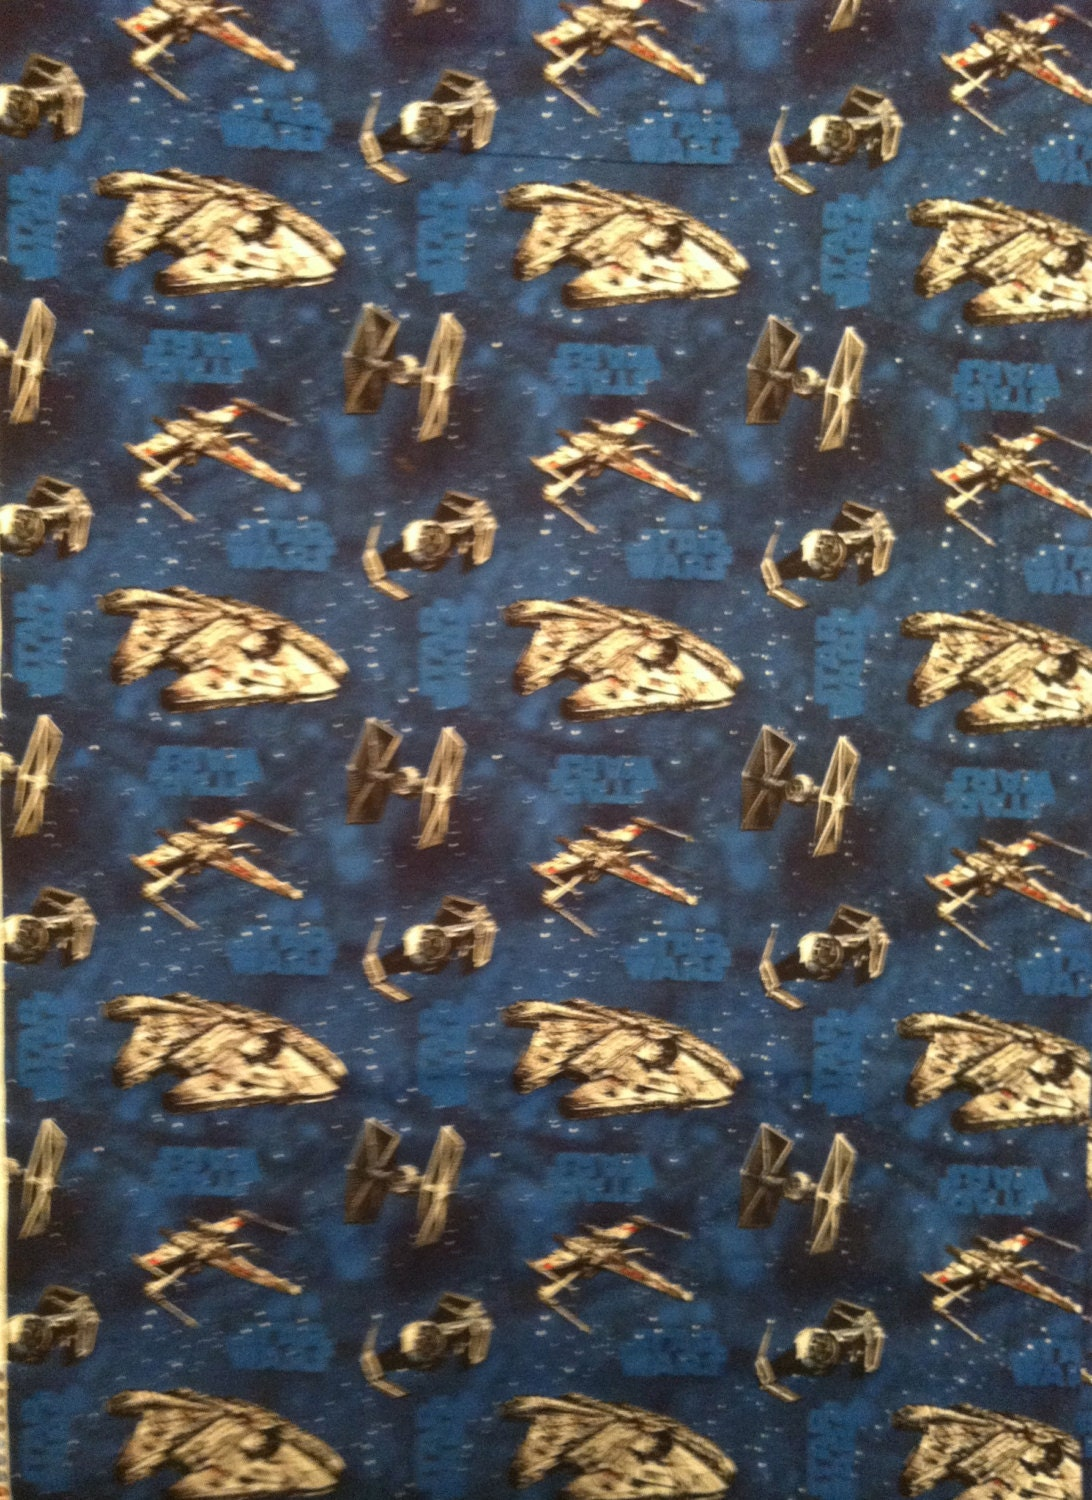 A star wars action in space tossed fabric by the yard free for Space fabric by the yard